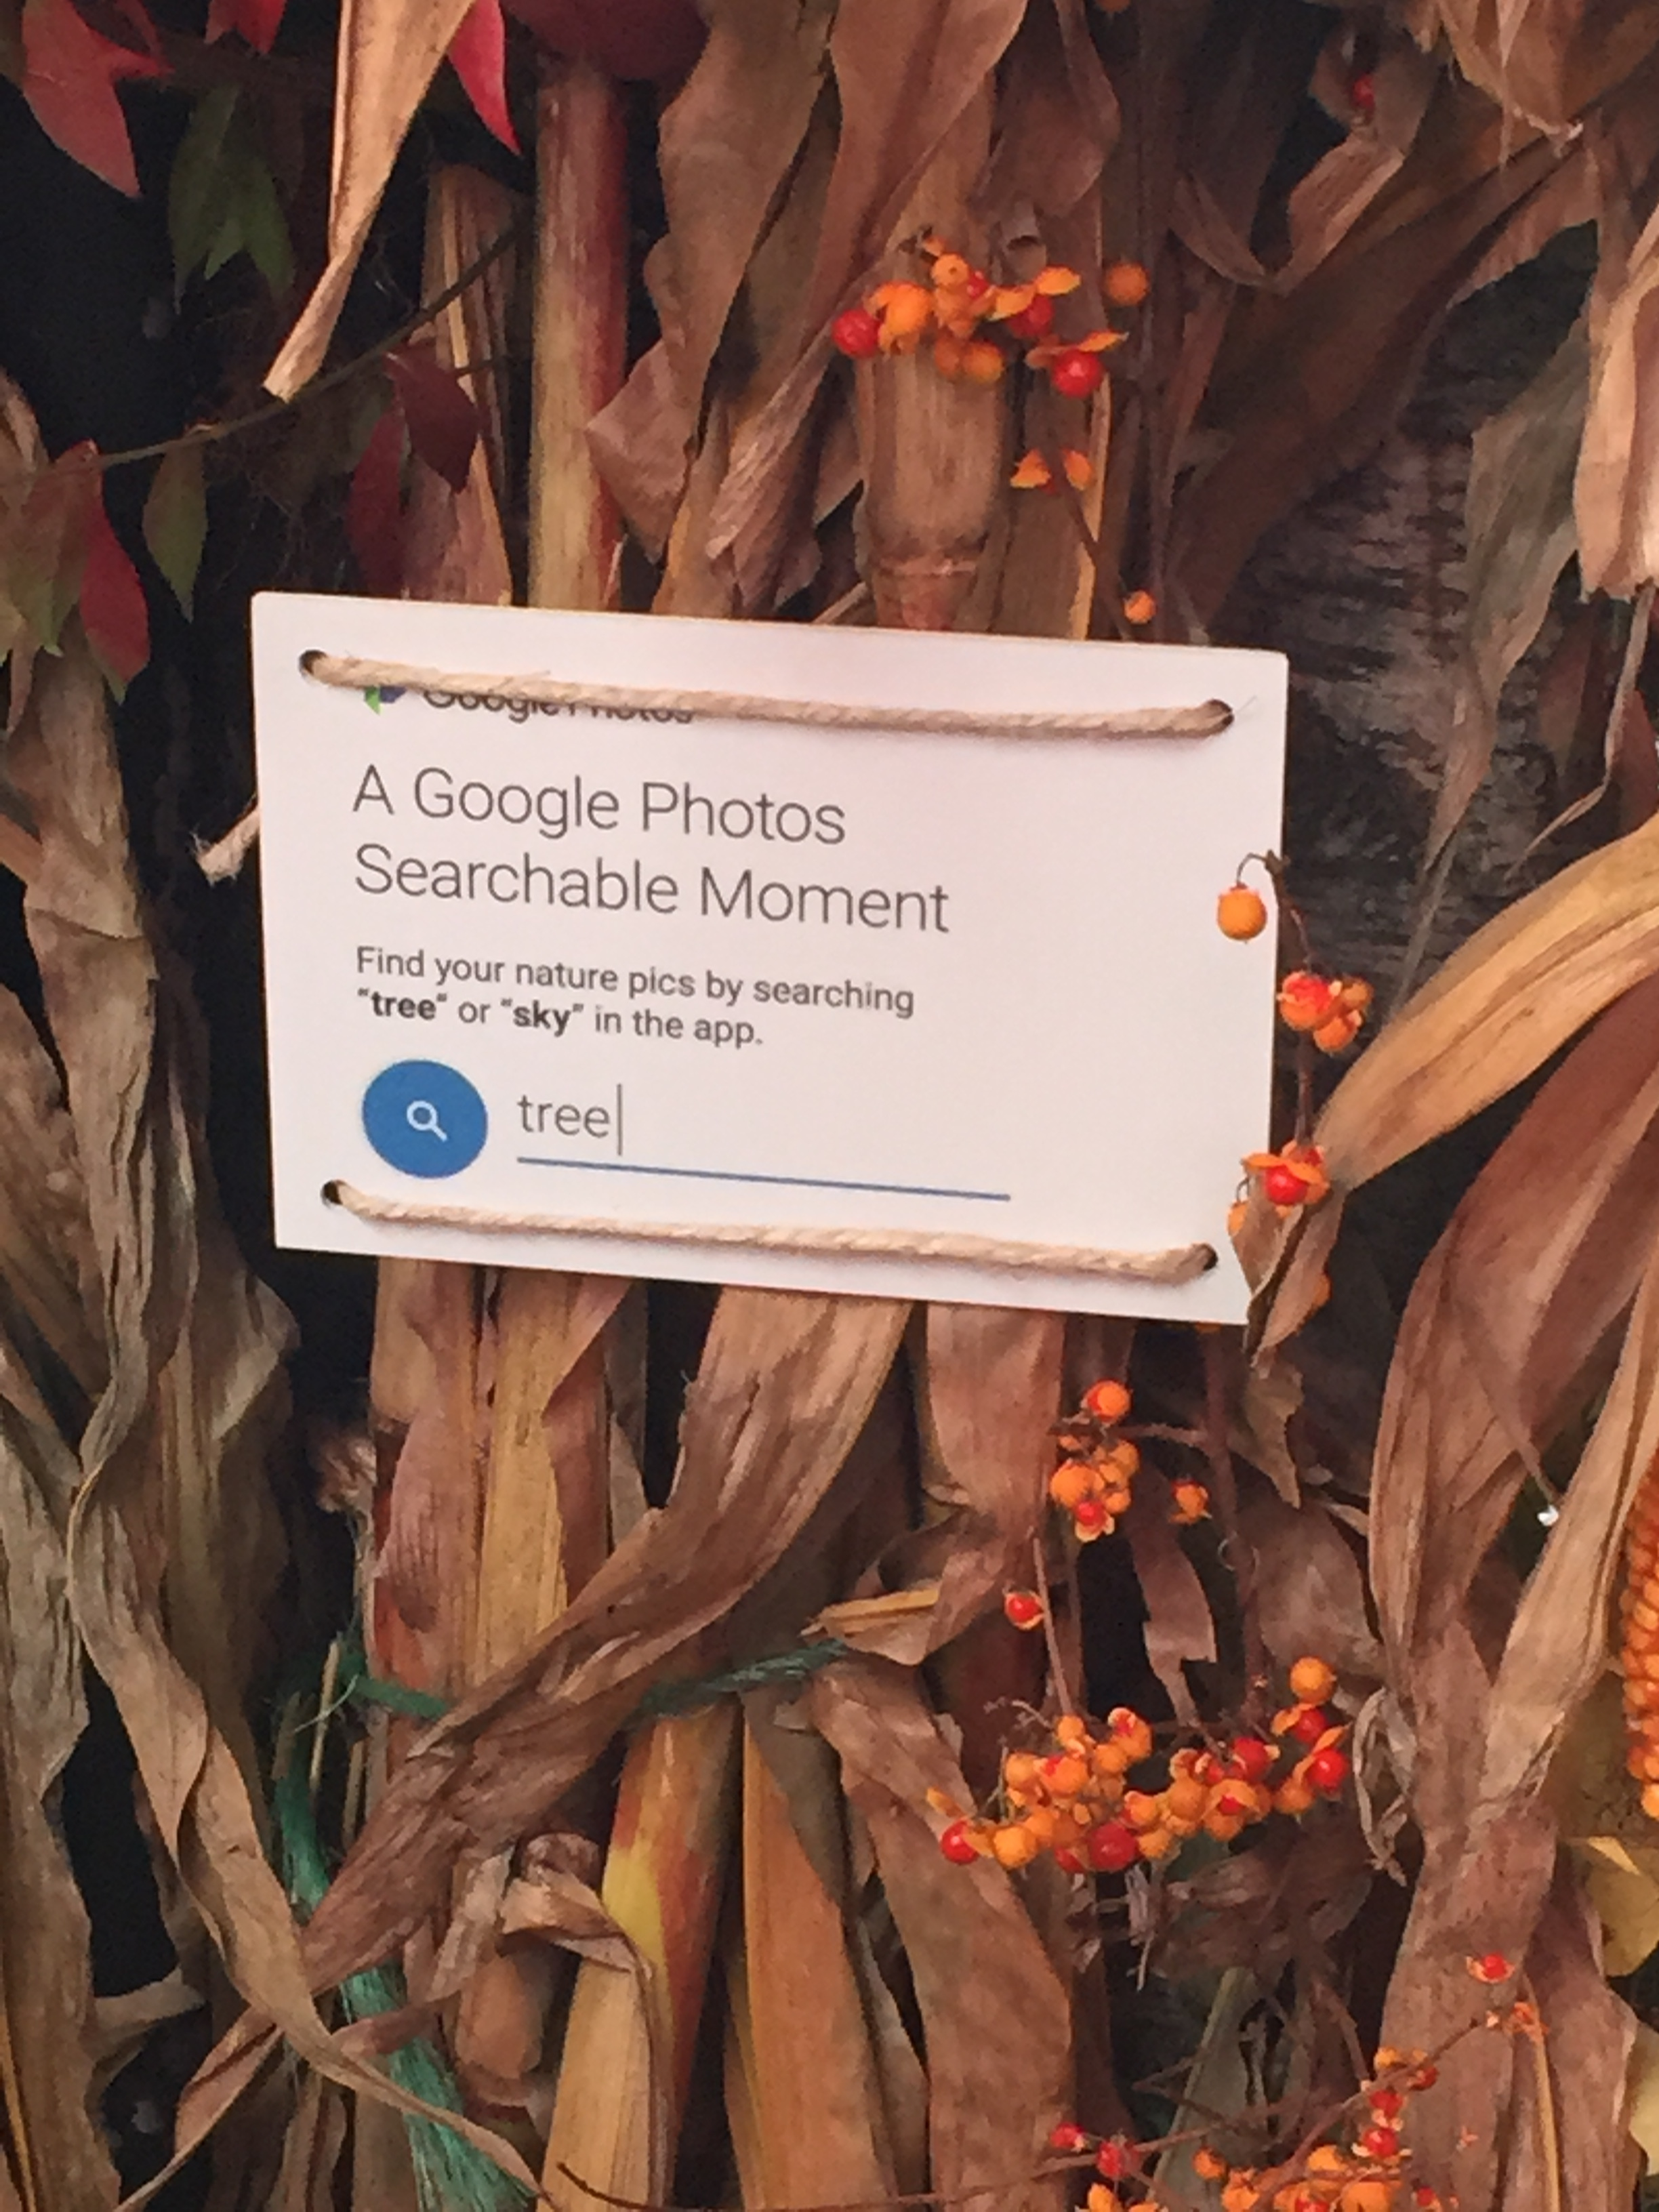 """We created """"Searchable Moments"""" around the event, encouraging visitors to snap pics, then search for them on Google Photos using suggested keywords."""